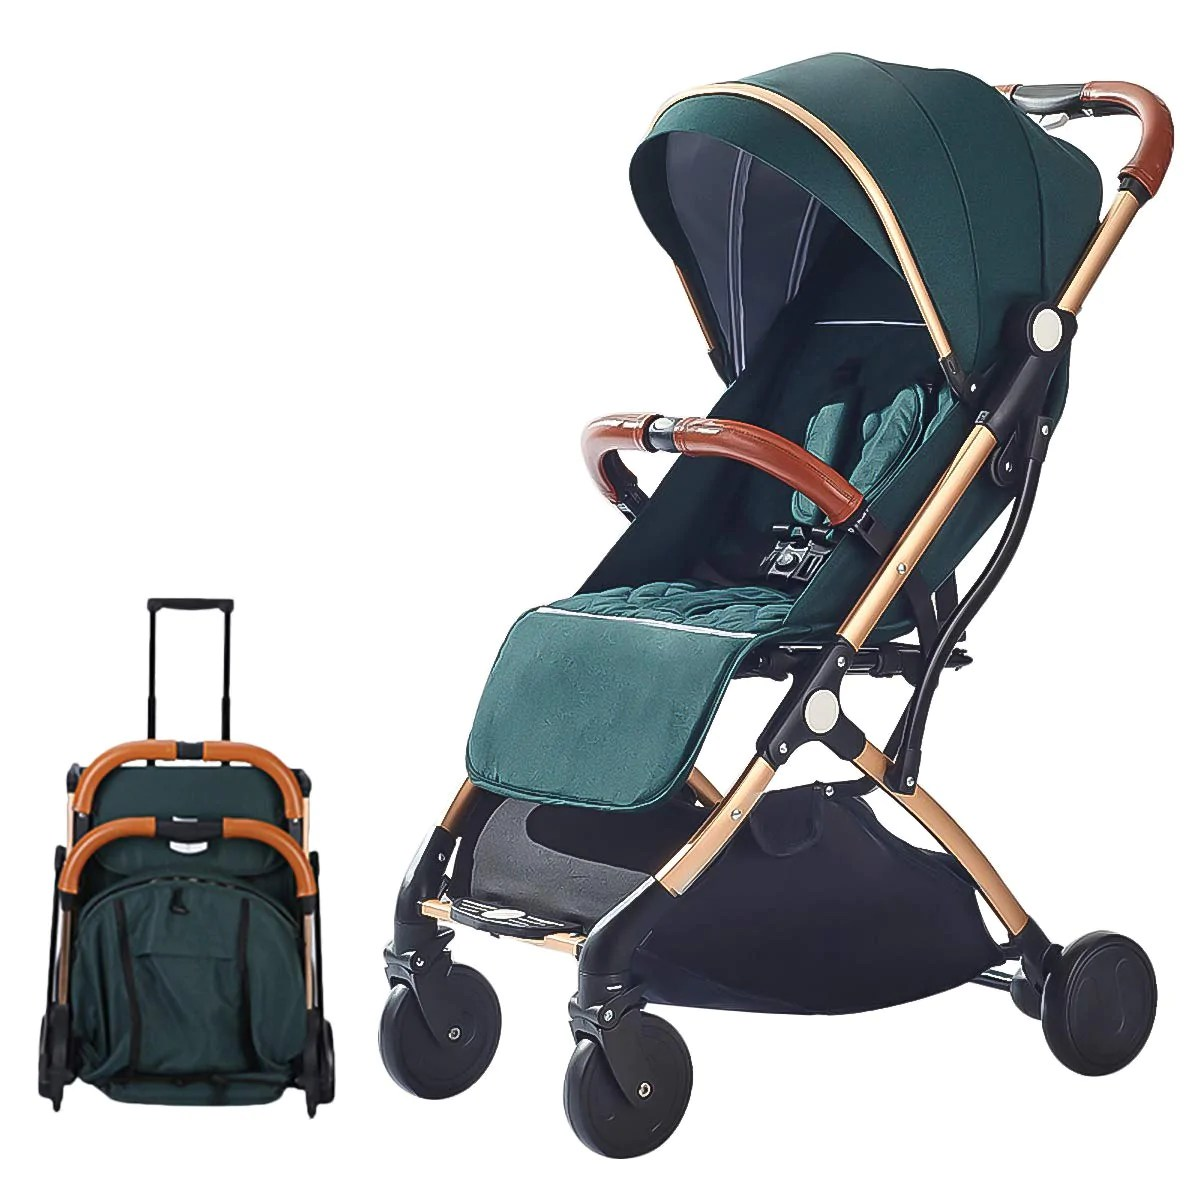 Lightweight Folding Pram Sonarin Lightweight Stroller Compact Travel Buggy One Hand Foldable Five Point Harness Great For Airplane Green Sonarin Lightweight Stroller Compact